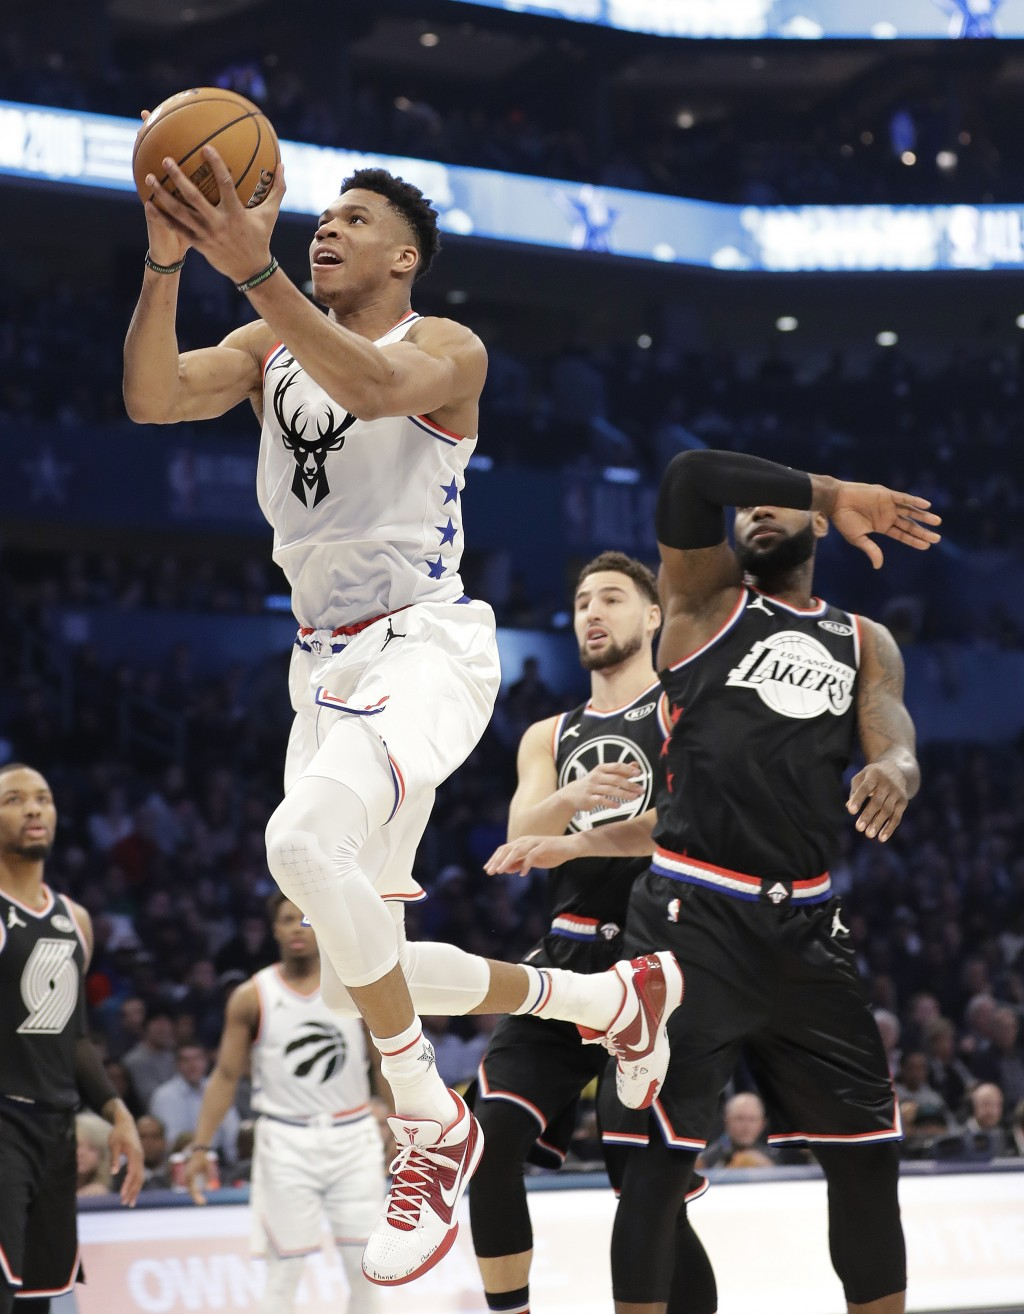 CORRECTS TO THE LAKERS, NOT THE CAVALIERS - Team Giannis' Giannis Antetokounmpo, of the Milwaukee Bucks, moves past Team LeBron's LeBron James, of the